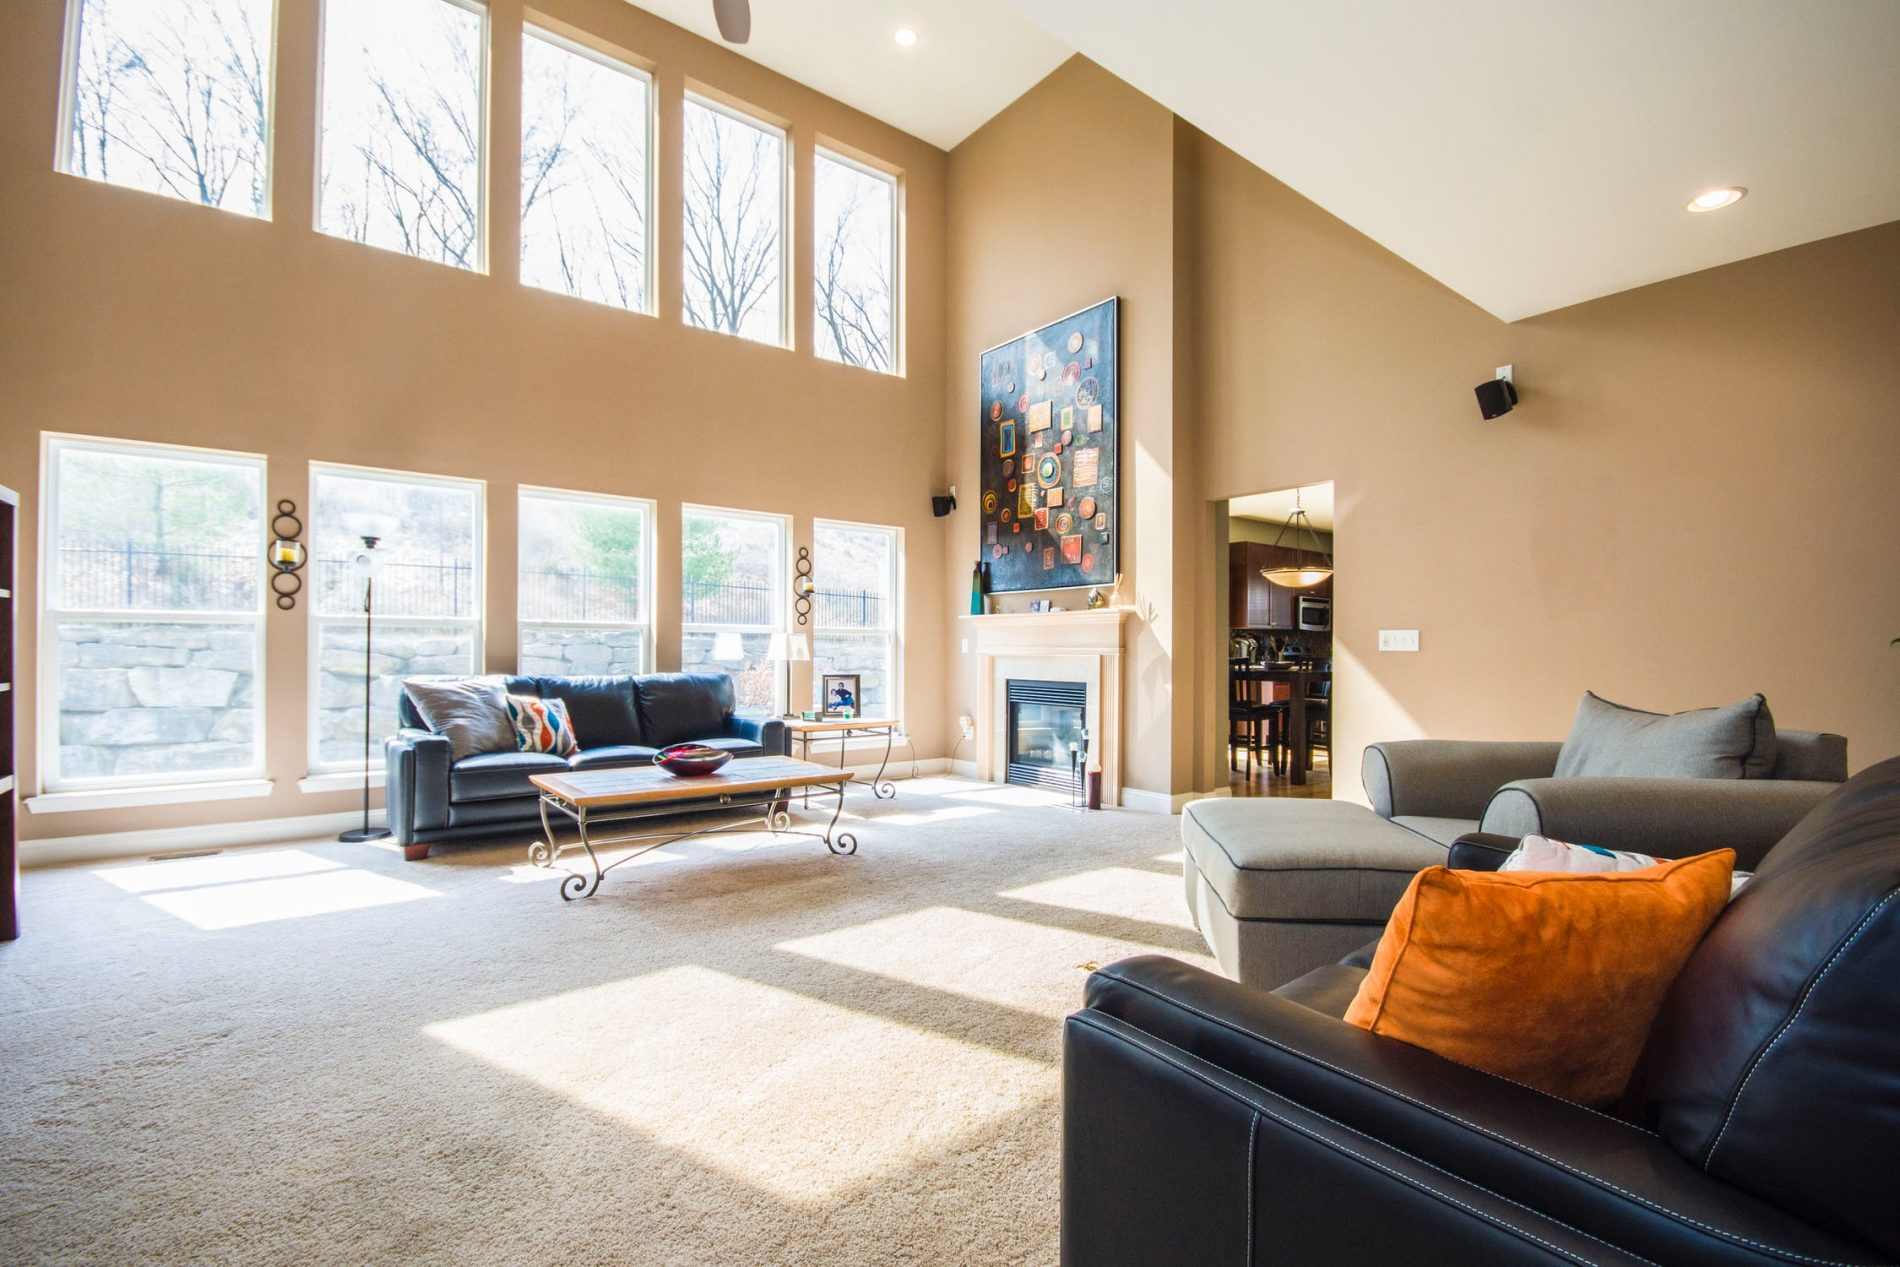 3 Reasons Why Window Film Should Be On Your Home Improvement List - Home Window Tinting in Buffalo, New York